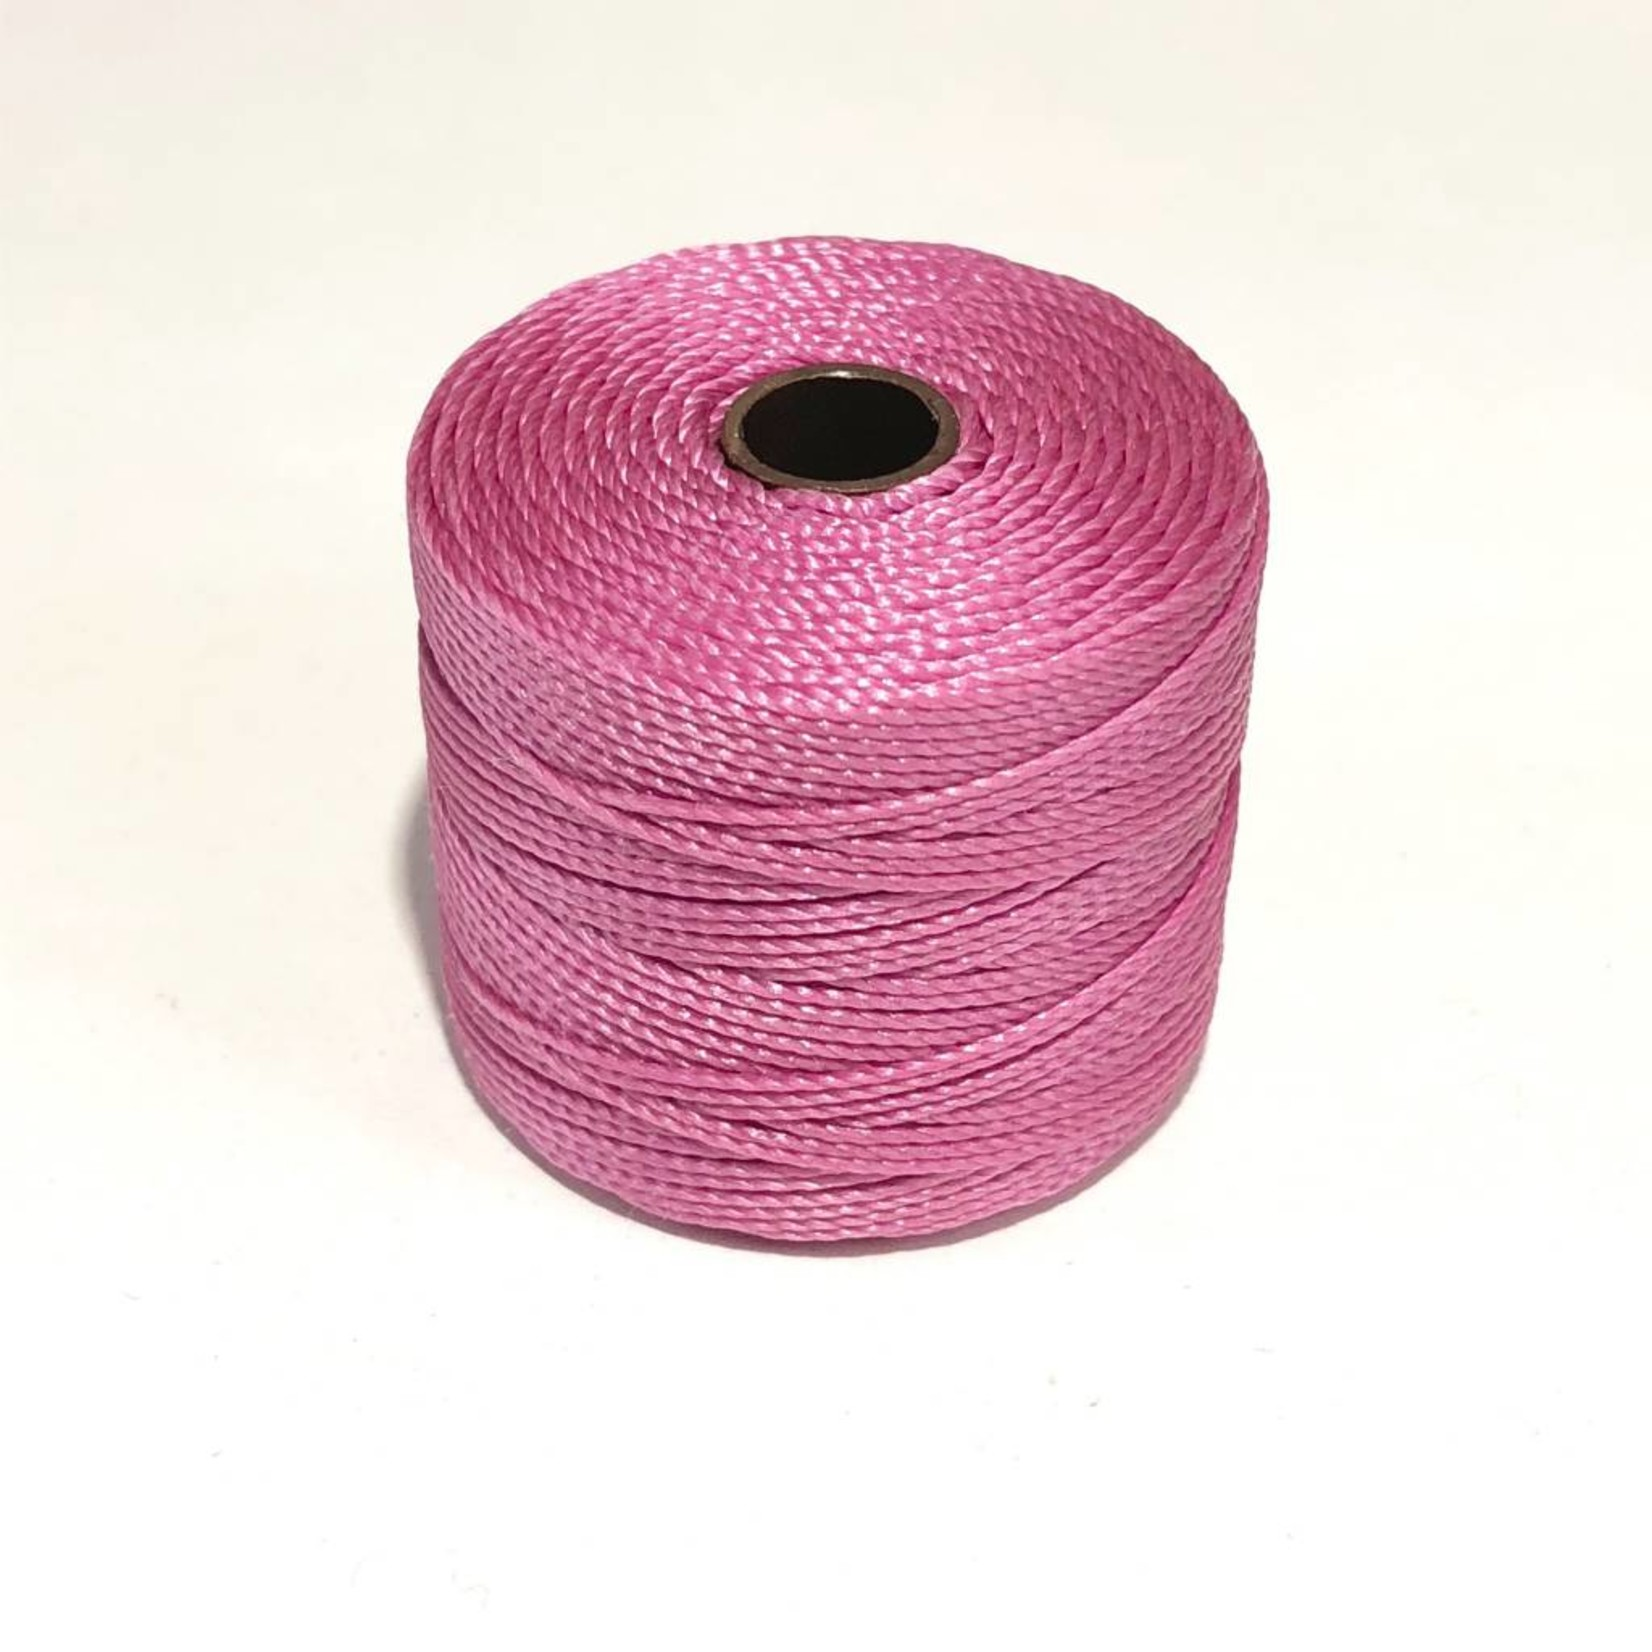 S-Lon Nylon Bead Cord Light Orchid 77Yd Roll